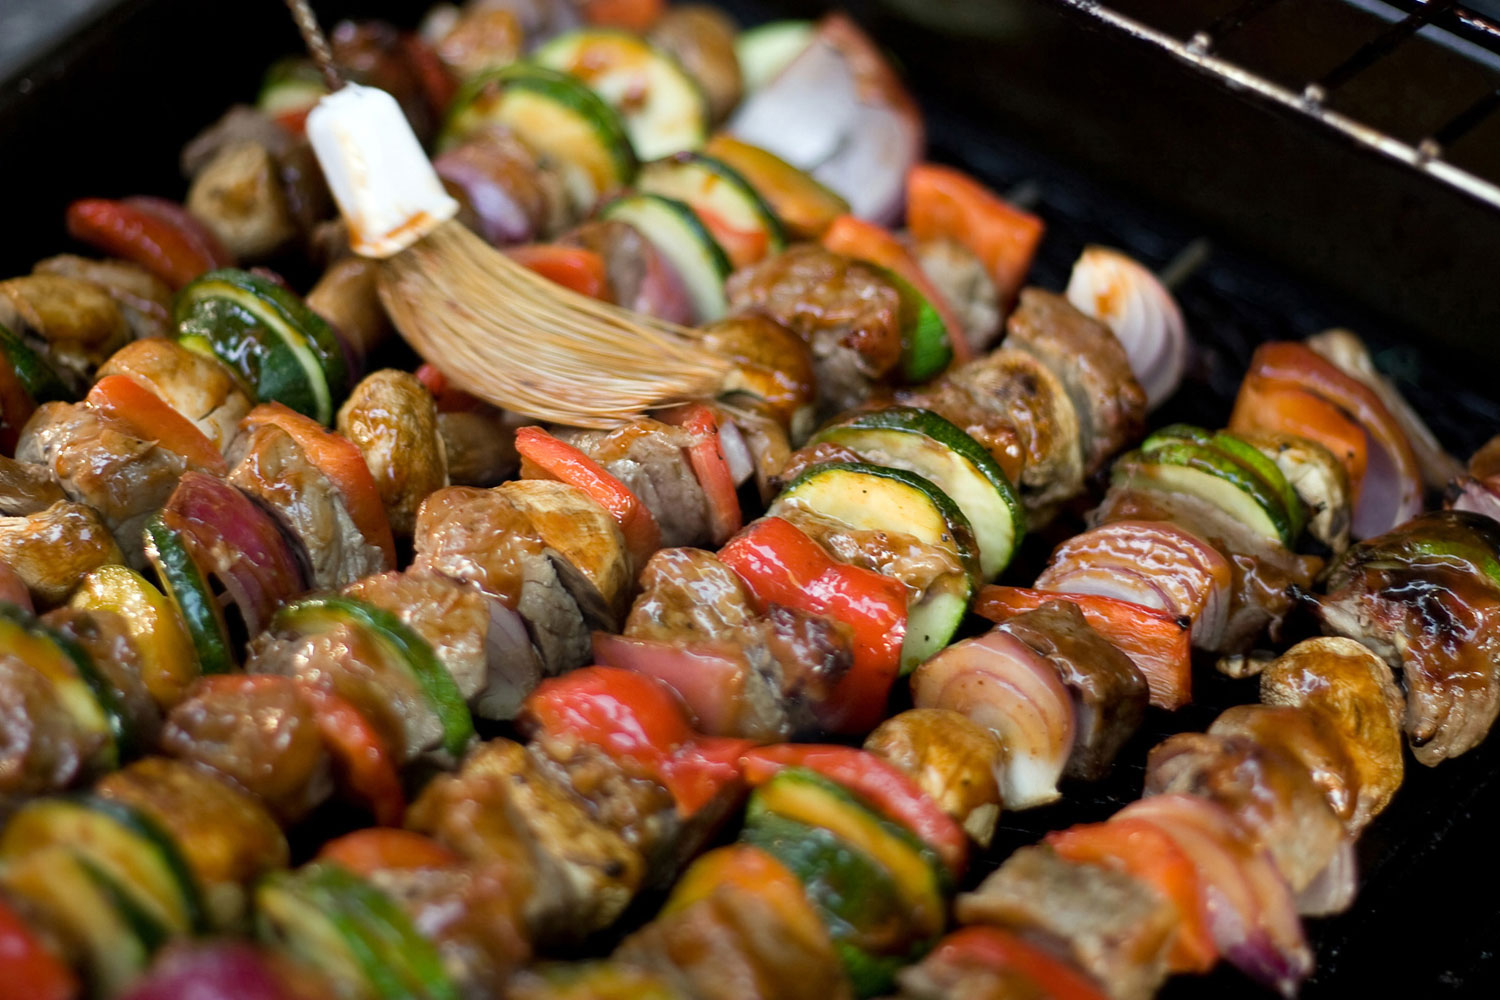 picture of basting kebabs of beef, onion, zucchini and red peppers over a grill